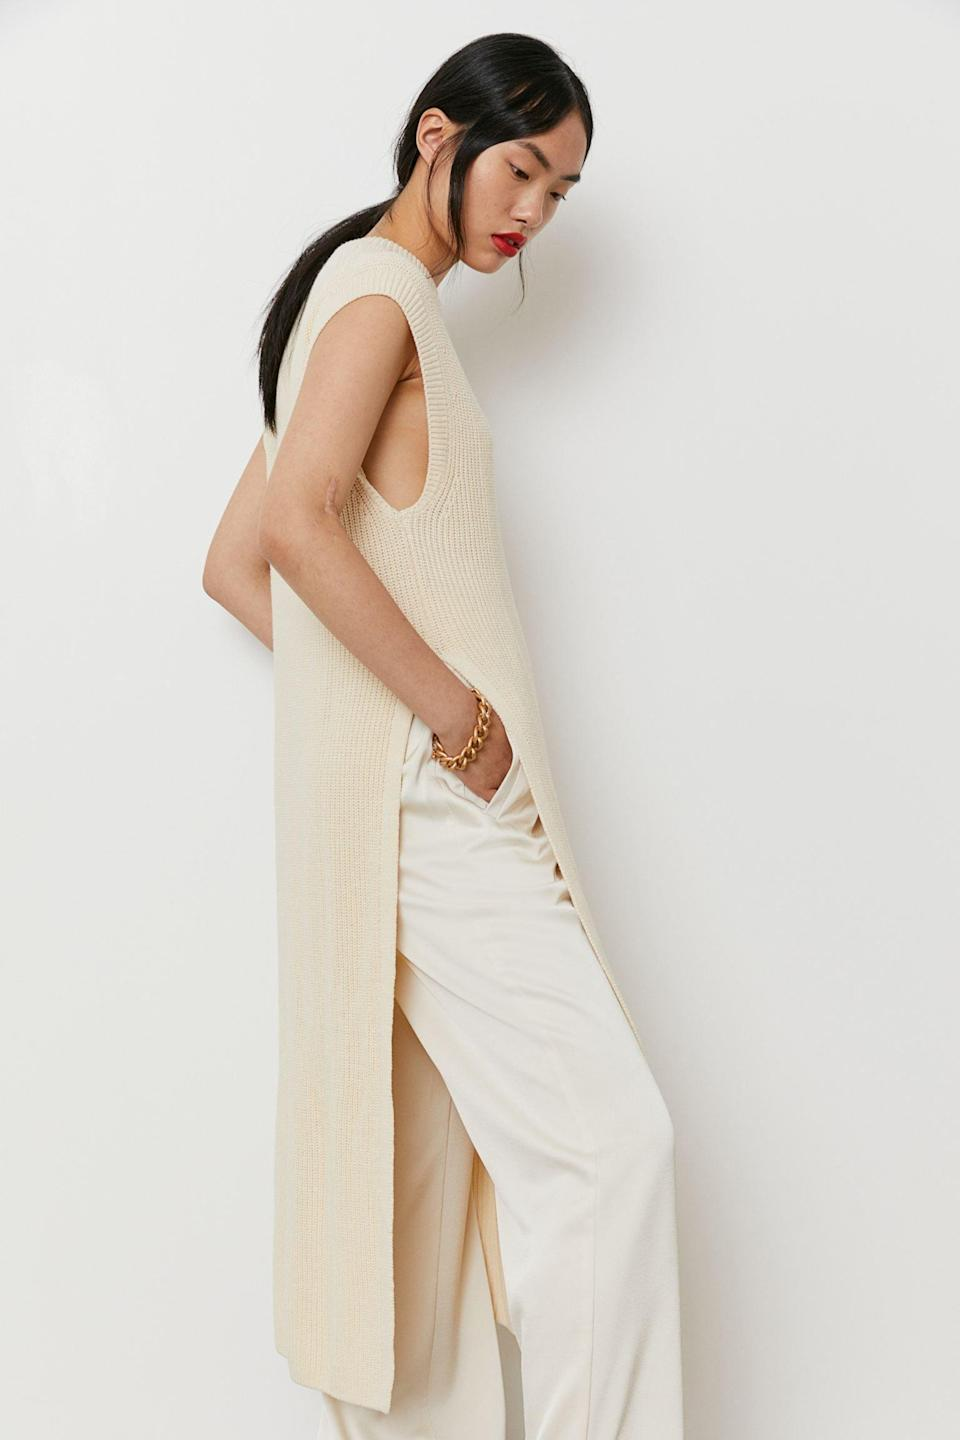 <p>We love that this <span>Rib-Knit Dress</span> ($16, originally $20) can double as a shirt and be paired with pants. It looks luxurious and elegant.</p>